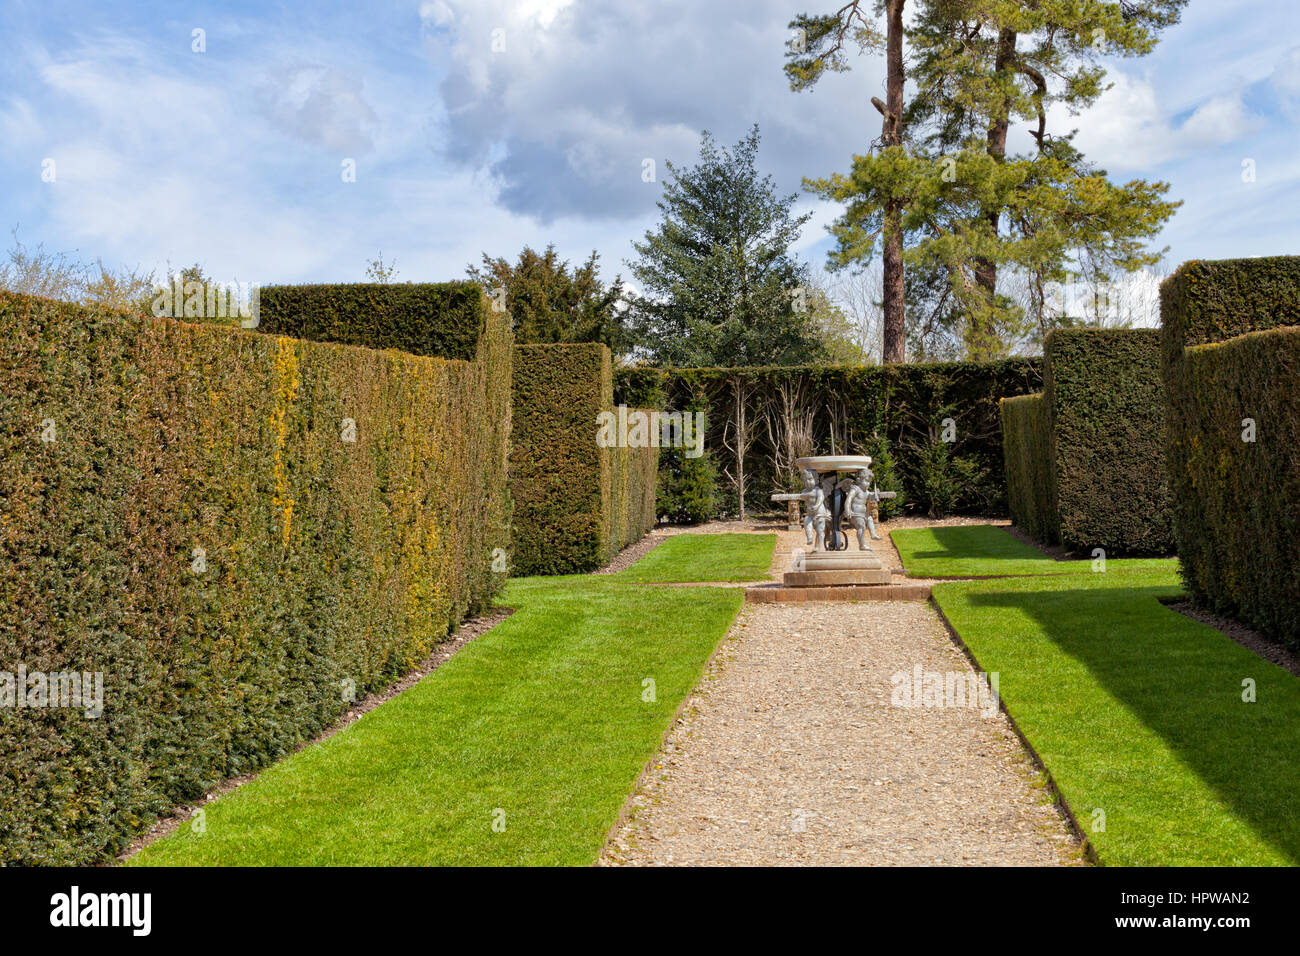 Garden with a path leading to a stone sundial ornament between tall hedge walls - Stock Image